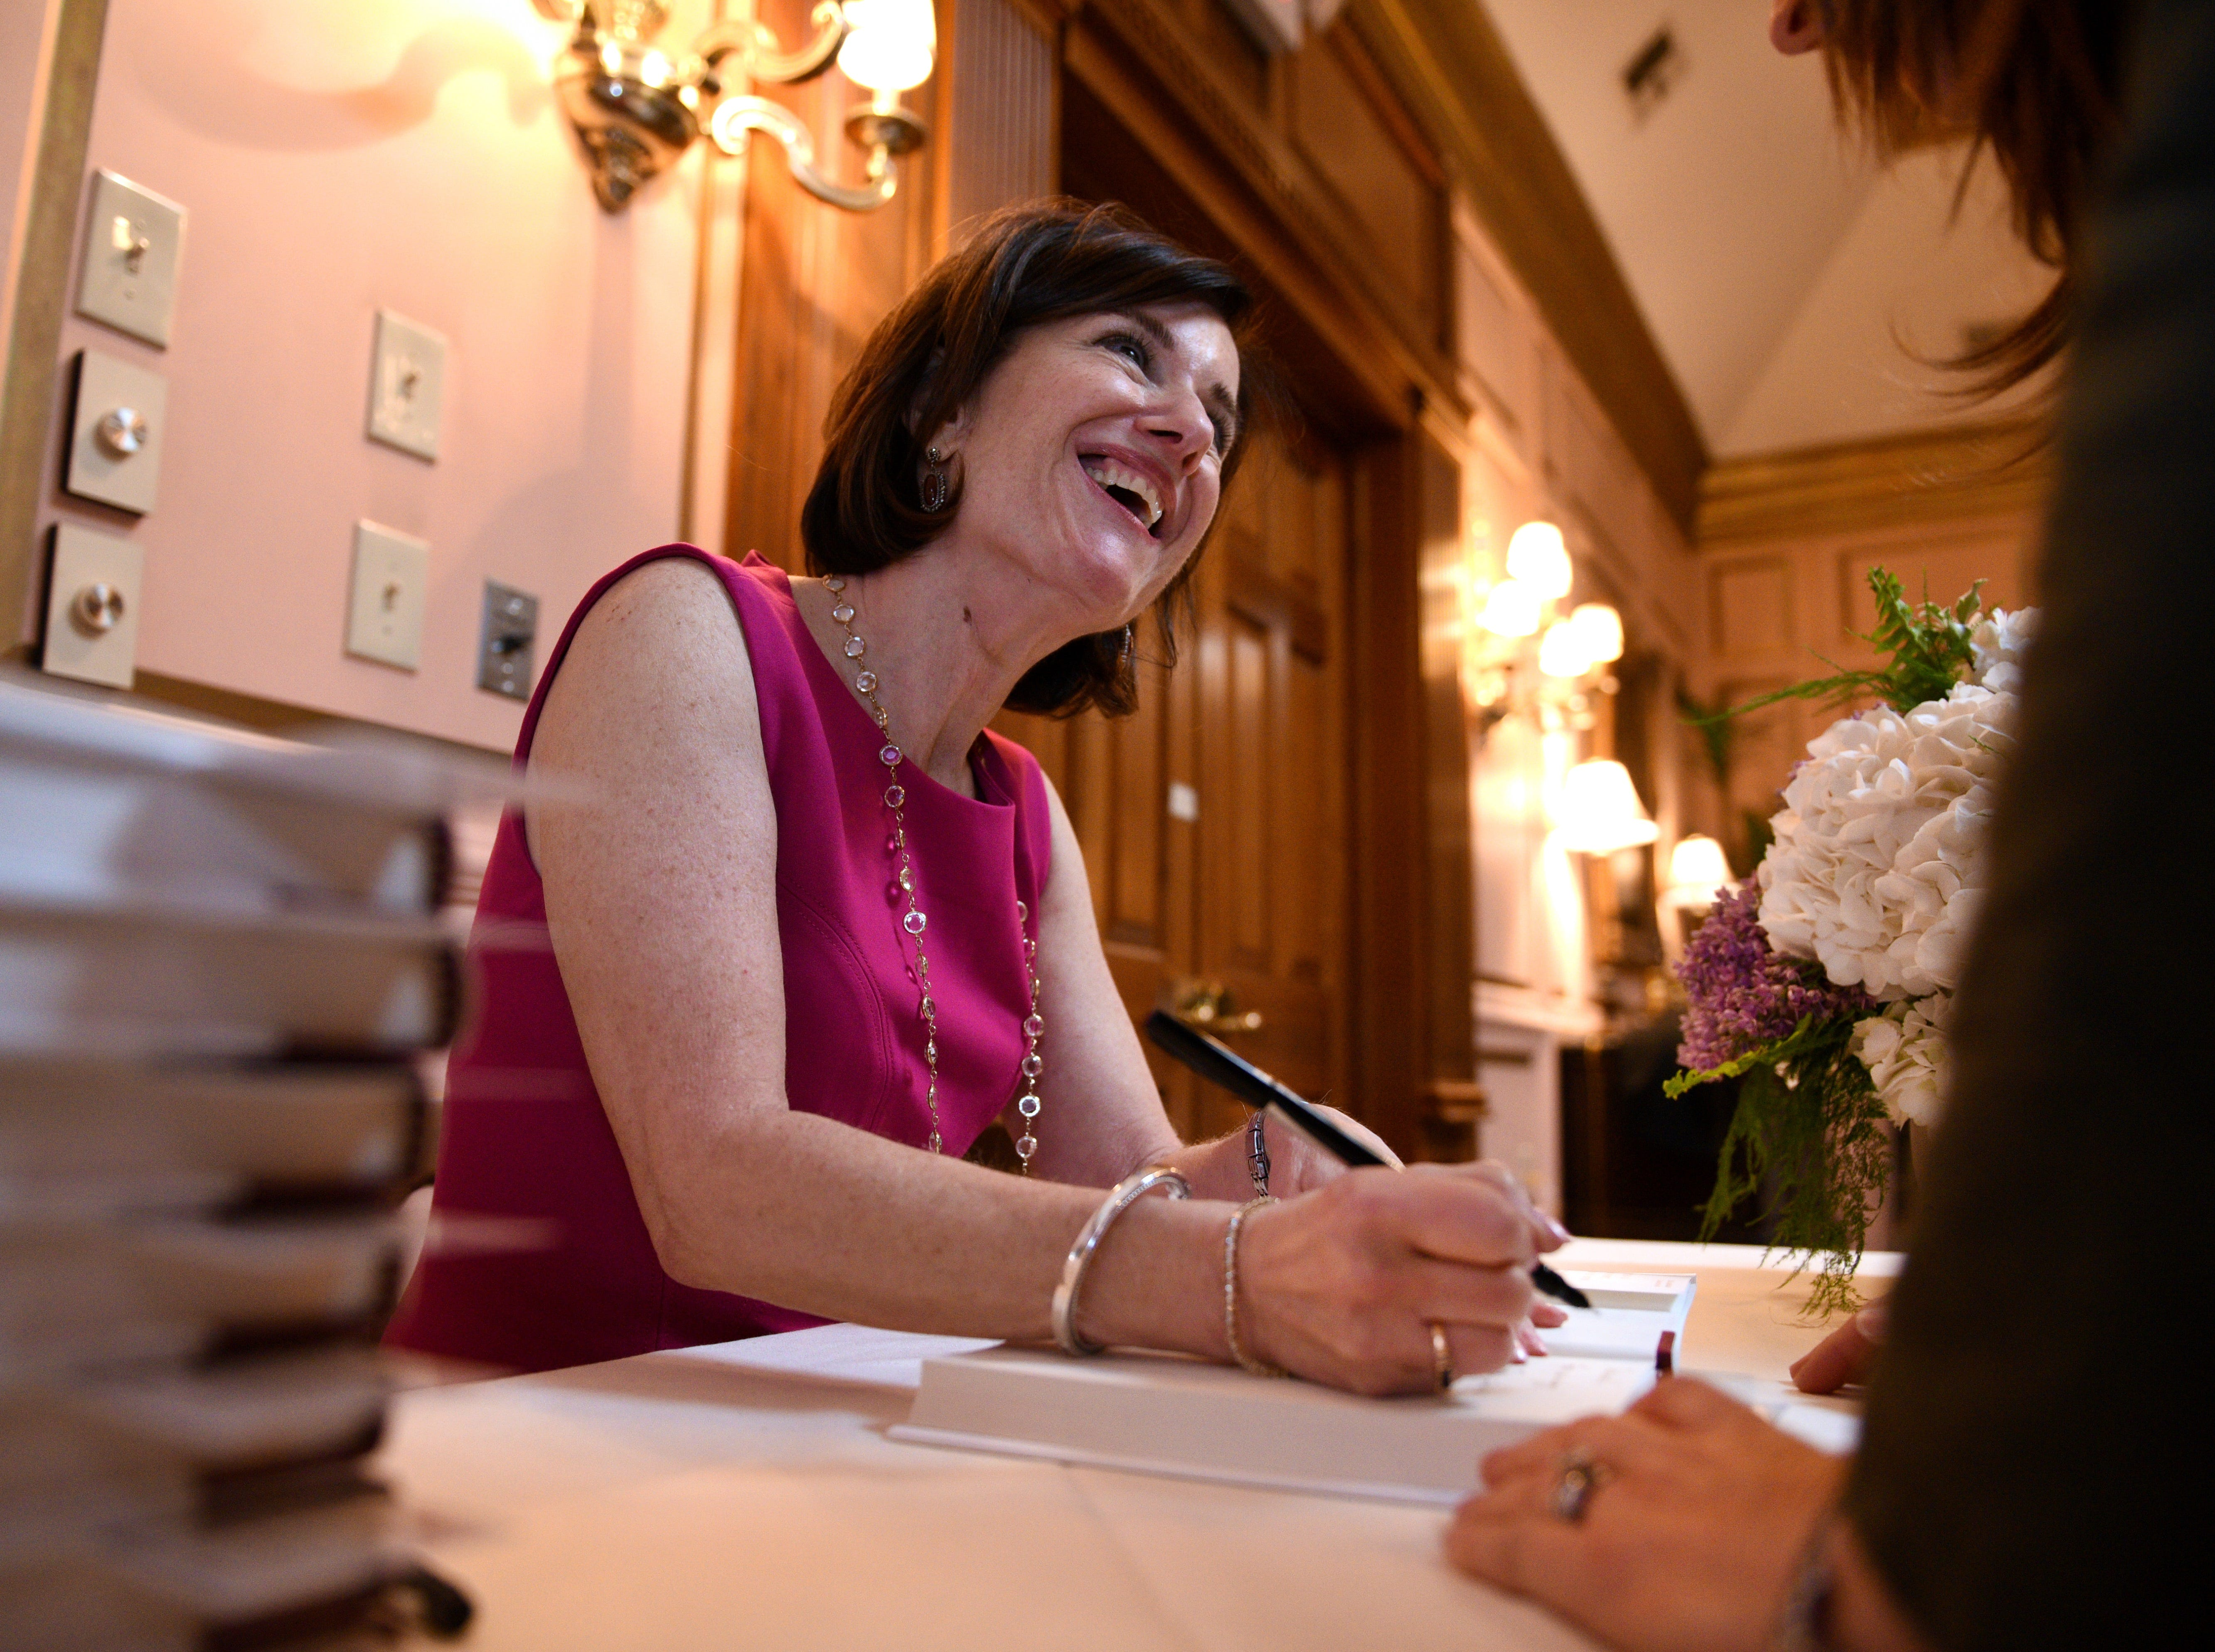 """Susan Packard, co-founder and former COO of HGTV, signing books at the launch of her new book """"New Rules of the Game: 10 Strategies for Women in the Workplace"""" during a luncheon at the Orangery Monday, Feb. 16, 2015."""